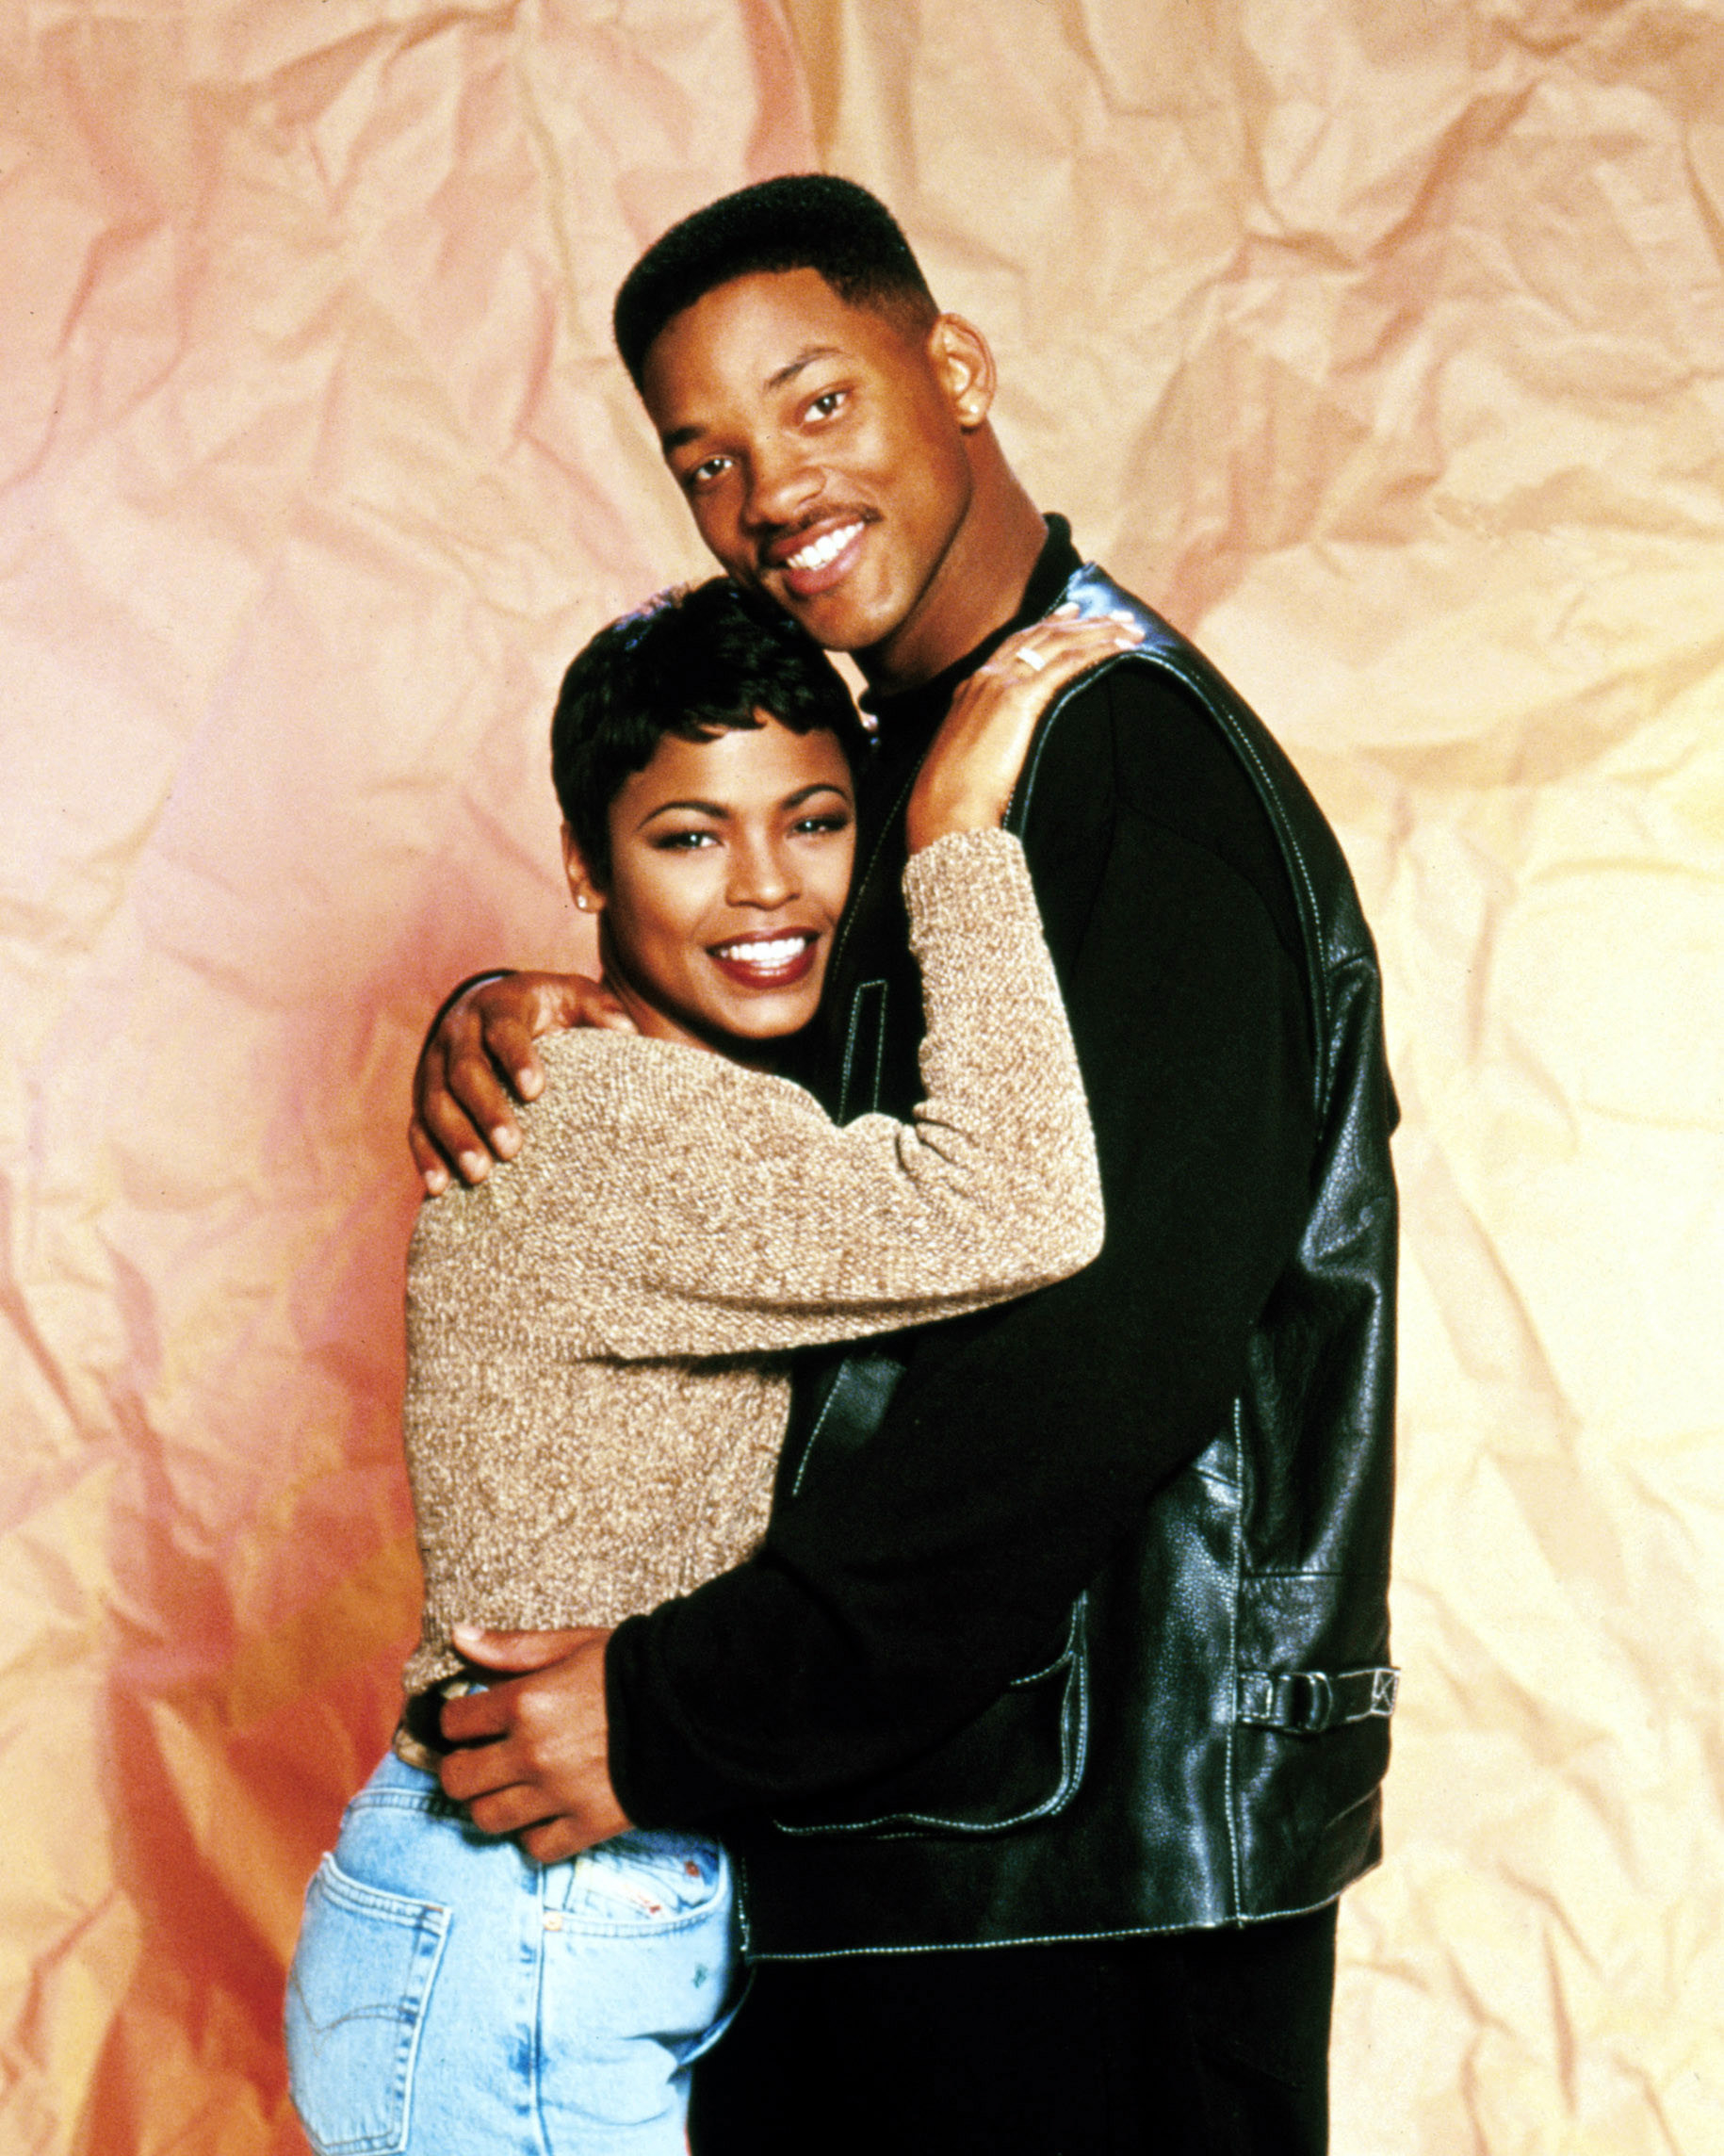 Nia Long and Will Smith embracing